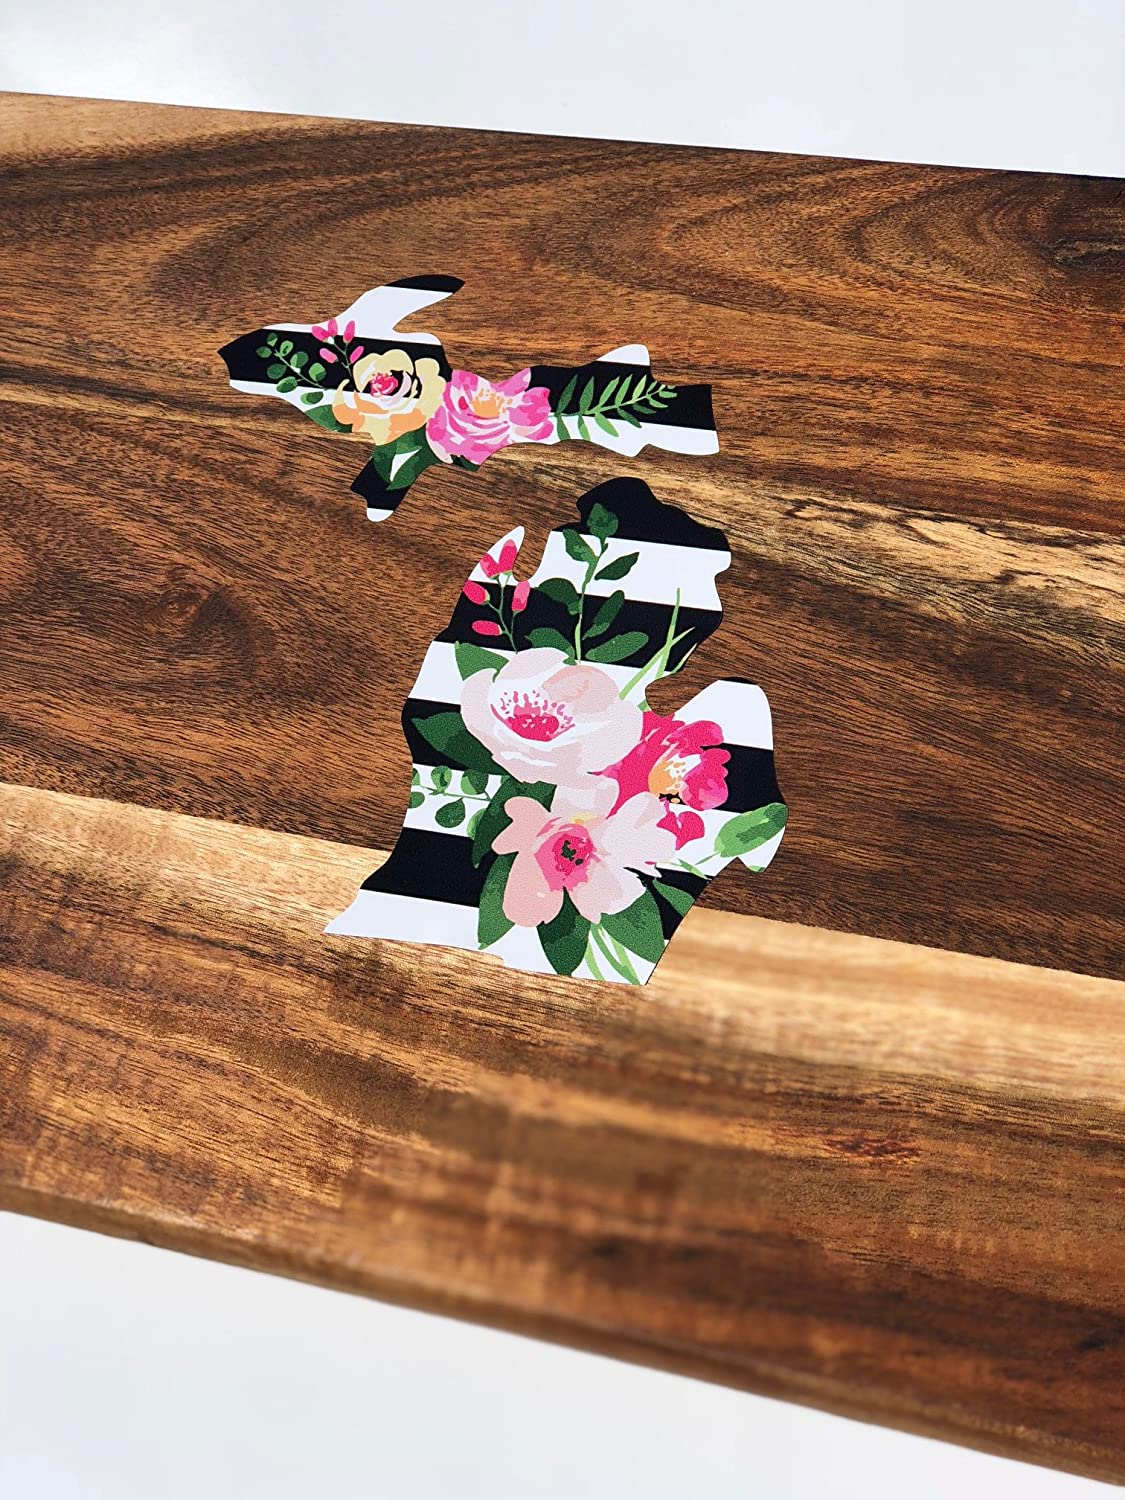 Standard Nudge Printing Michigan Black and White Striped Flower Floral Watercolor Design Car Automotive Decal Bumper Sticker